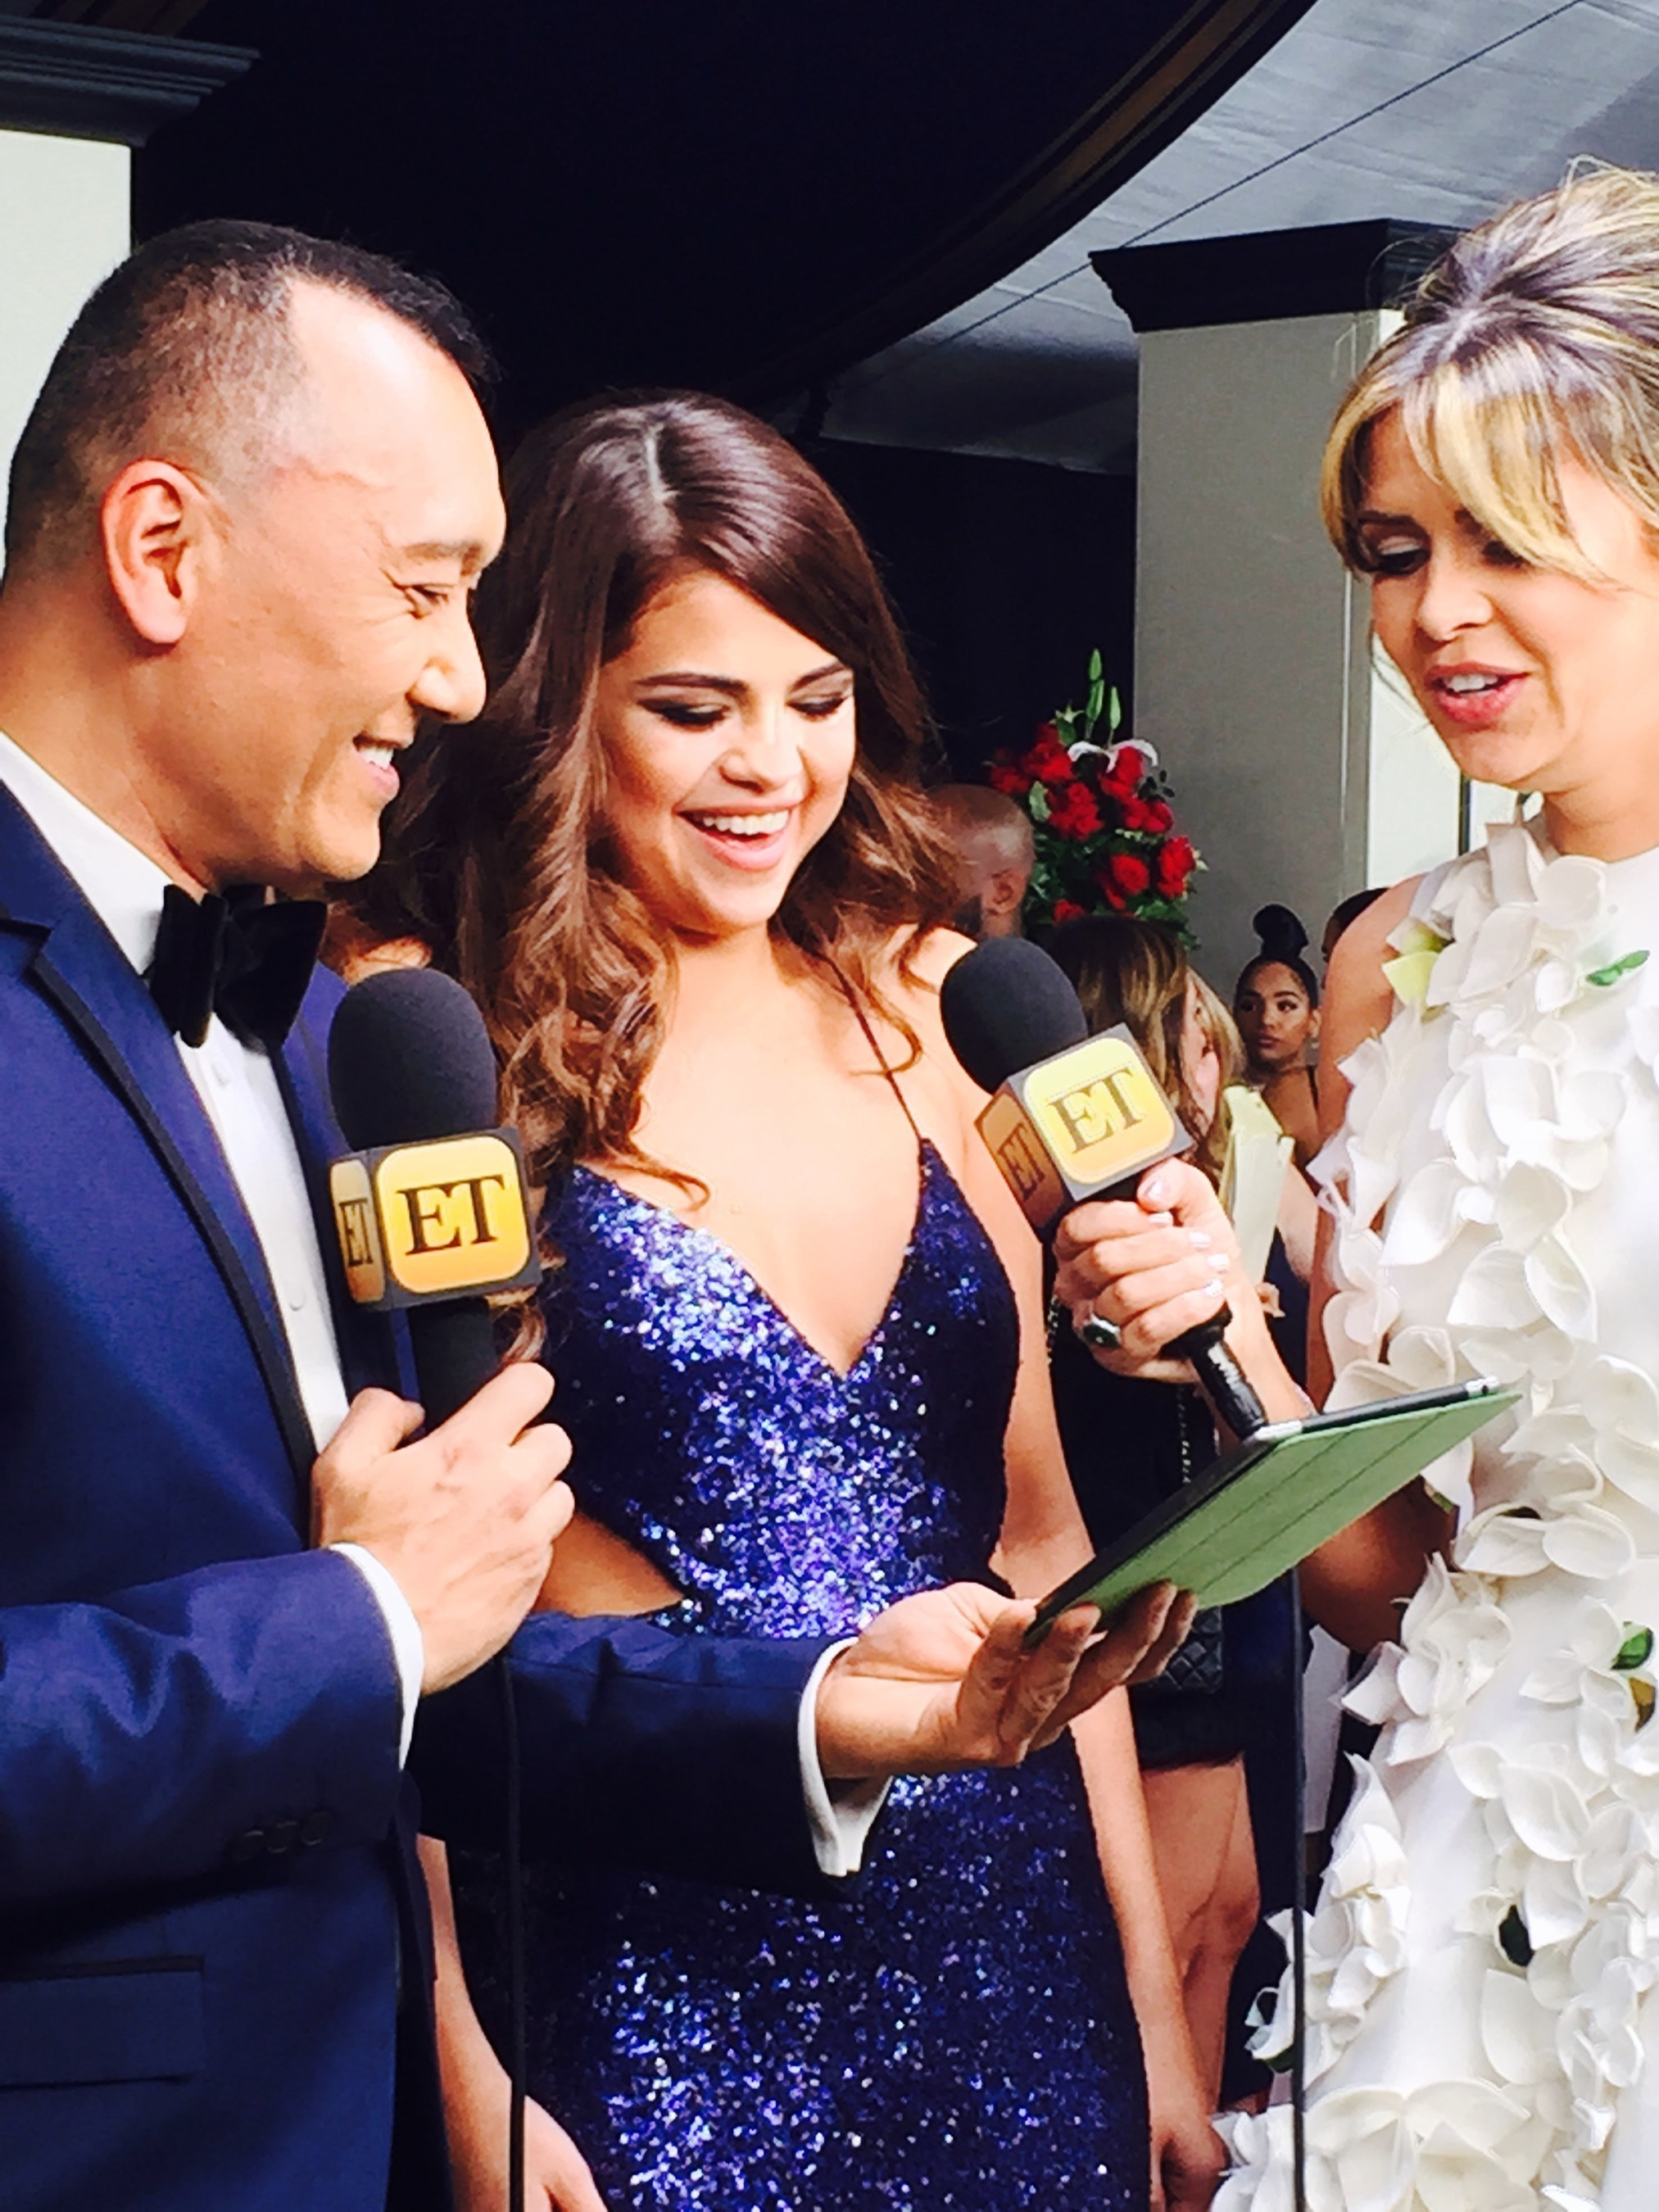 Live from the 58th Annual Grammy's, Entertainment Tonight host, Carly Steel and fashion expert, Joe Zee caught up with singer and actress, Selena Gomez. ET utilized LiveU technology to capture all of the red carpet activities at the Staples Center in Los Angeles.